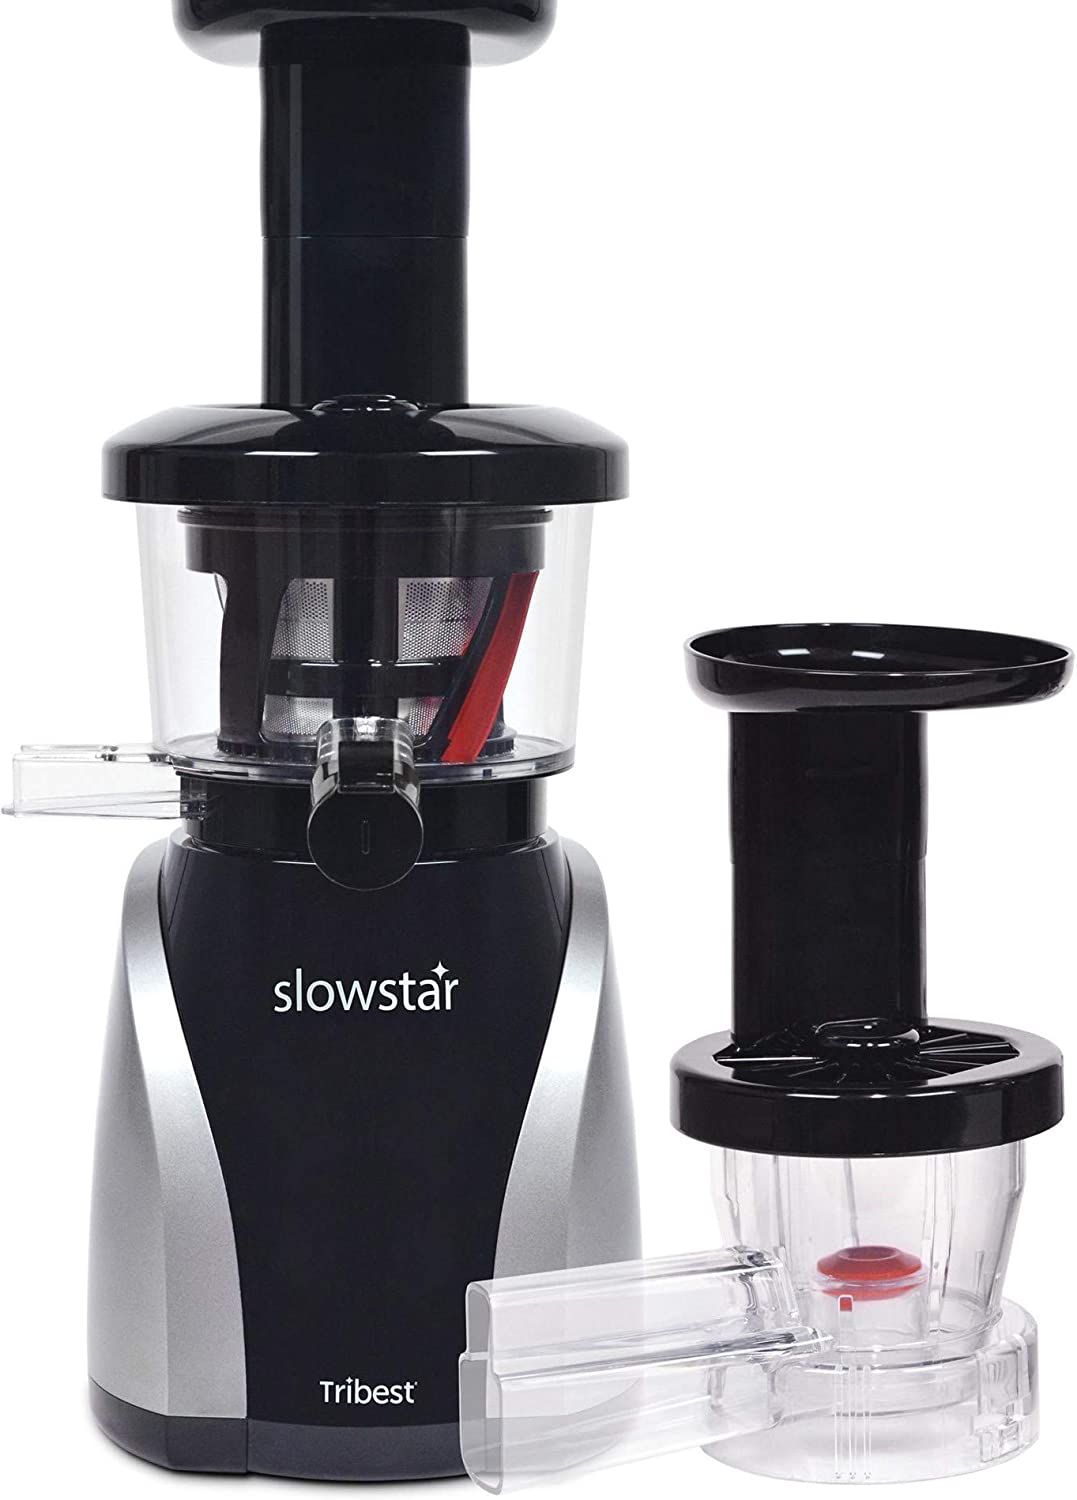 Tribest SW-2020 Slowstar, Vertical Slow Juicer and Mincer, Cold Press Masticating Juice Extractor